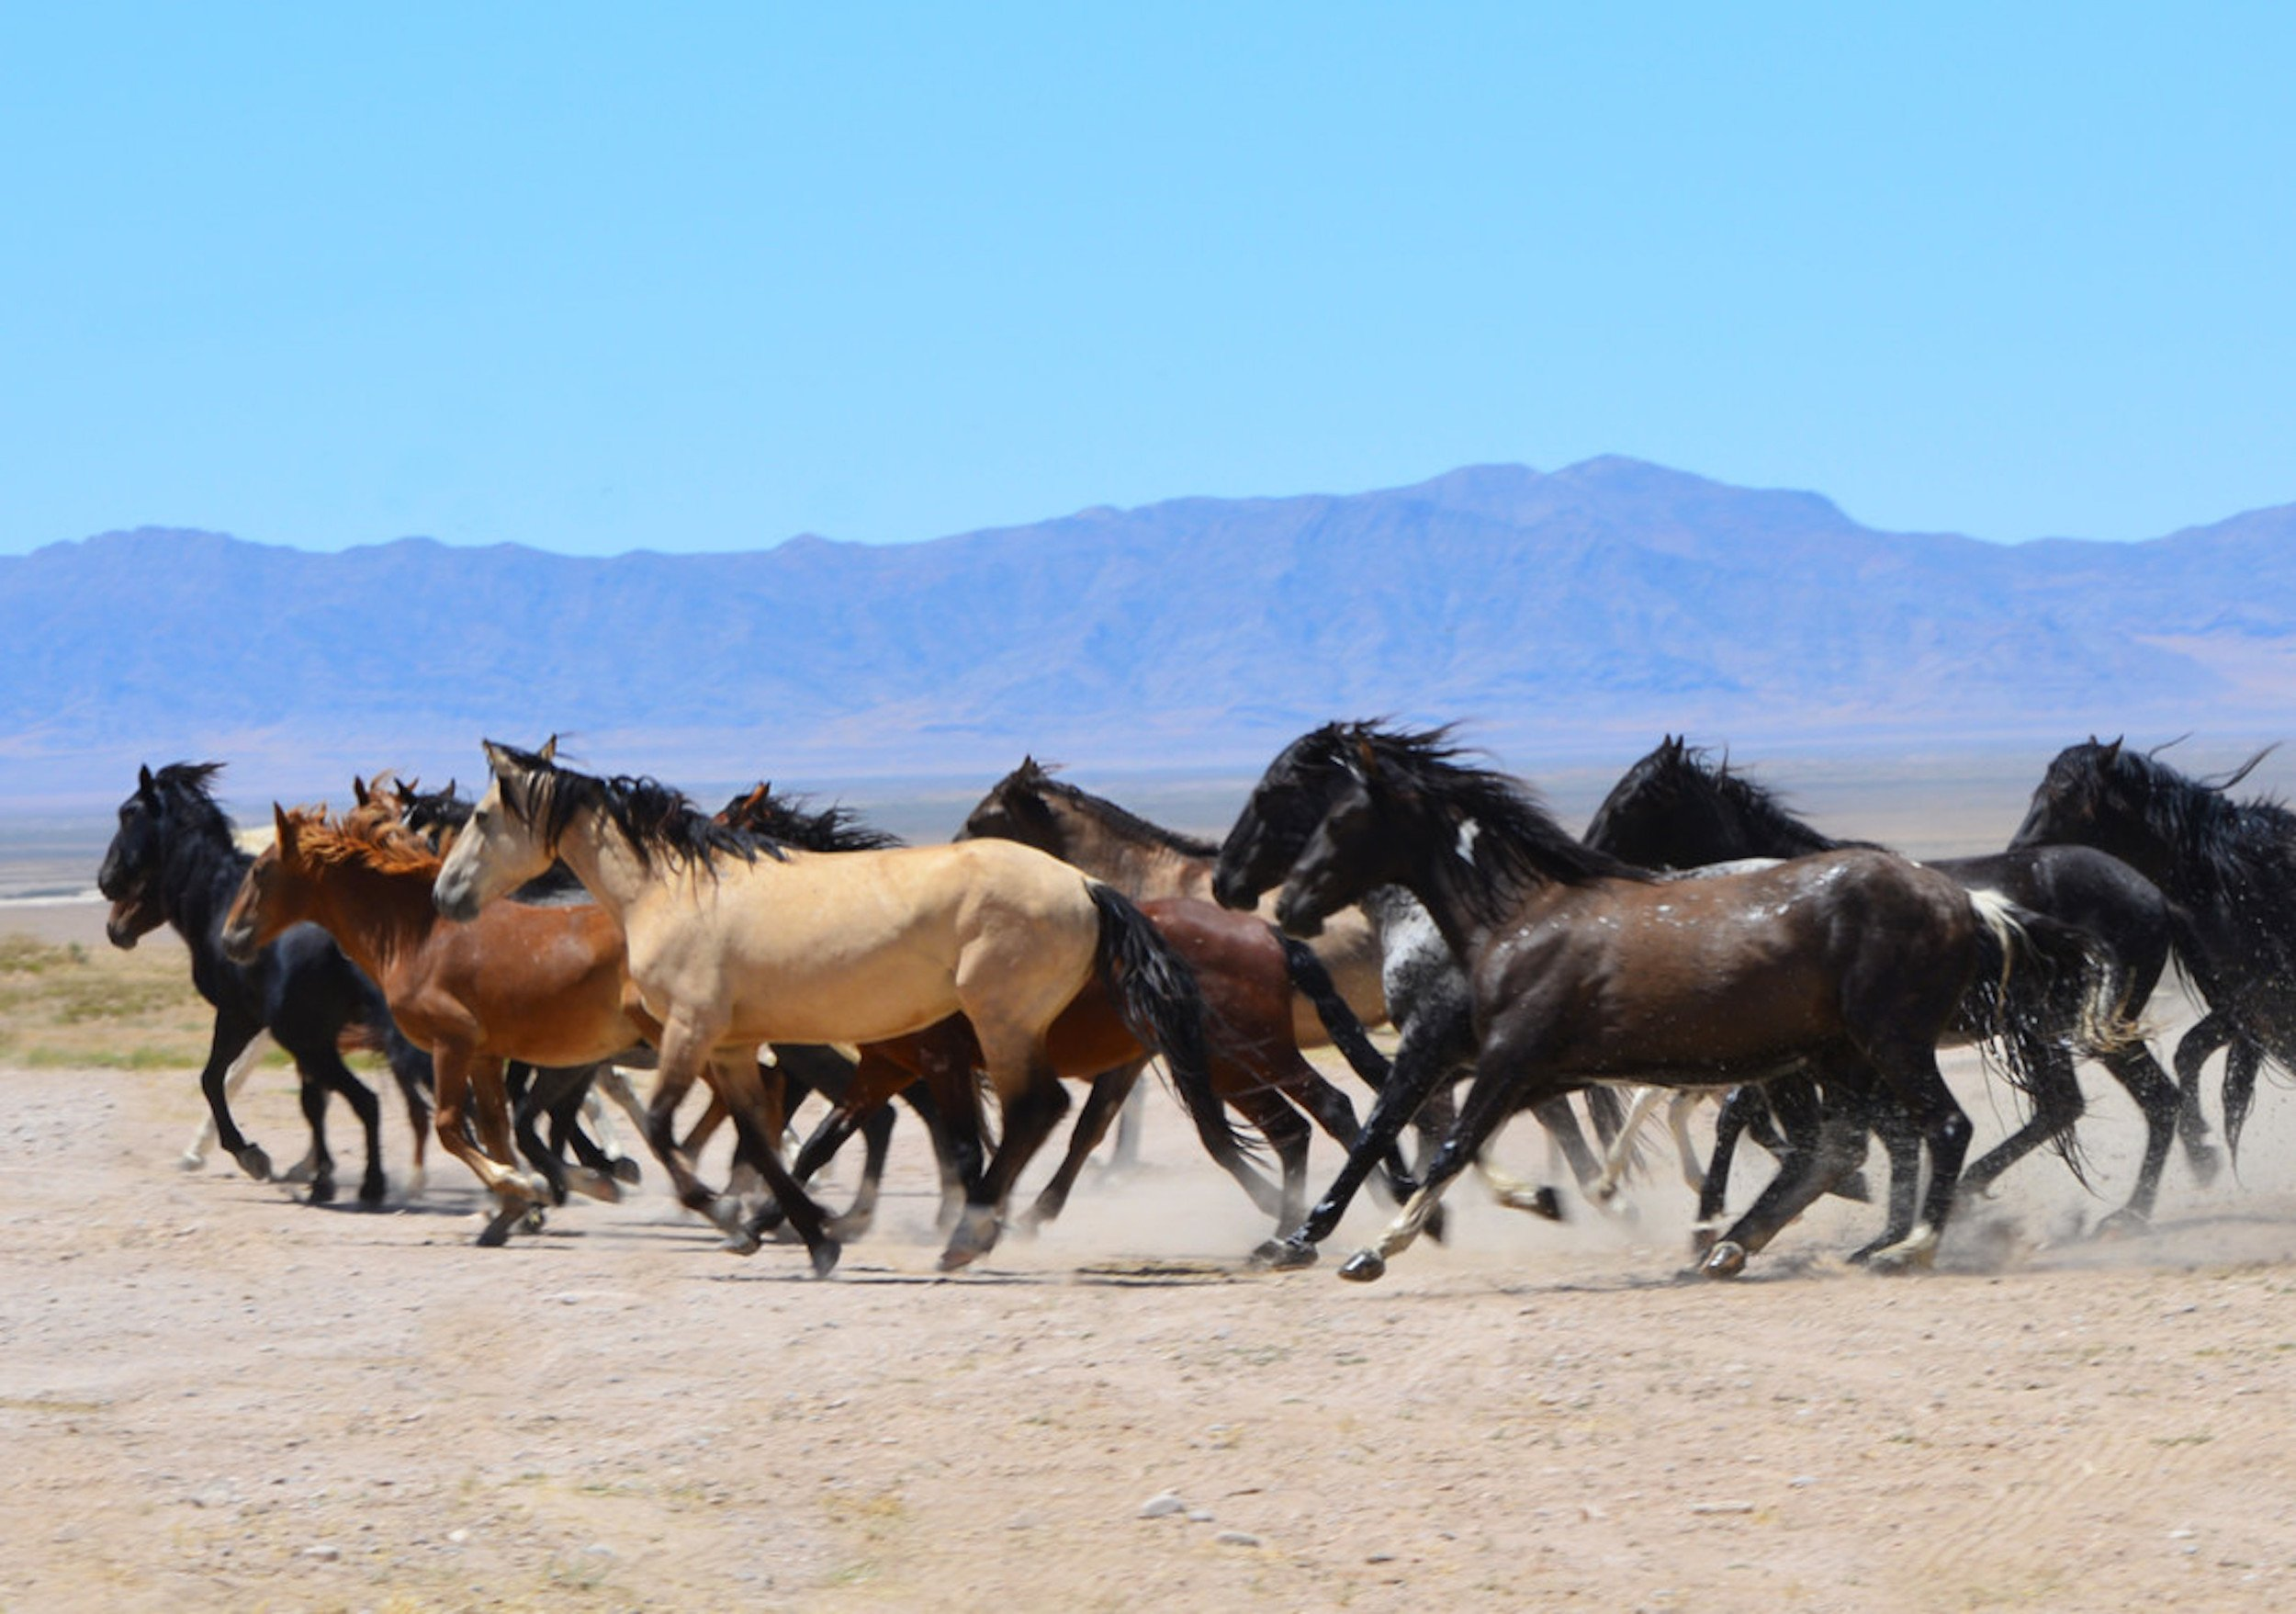 Opinion: Wild horses have chance at auction before slaughter thumbnail